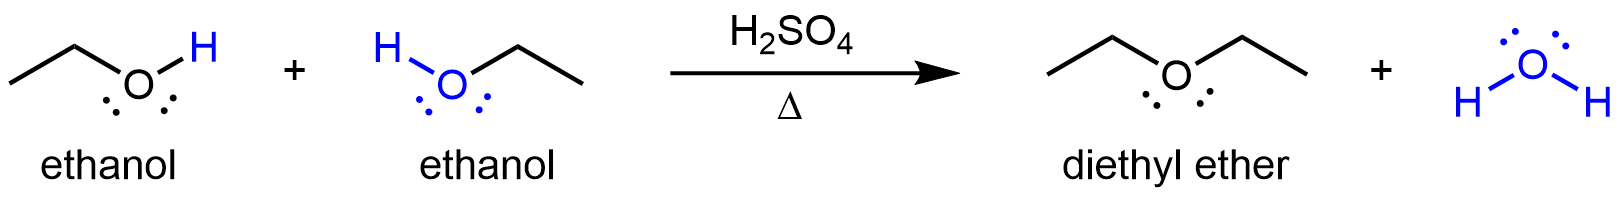 "This figure shows a reaction. The first molecule, which is labeled, ""ethanol,"" is a two C atom chain with the second C atom is bonded to a OH group. The H in the OH group is highlighted blue. There is a plus sign. The next molecule, which is labeled, ""ethanol,"" is also a two C atom chain with the second C atom is bonded to a OH group. The OH group is highlighted in blue. To the right of the second molecule there is an arrow labeled H subscript 2 S O subscript 4 above and Greek capital delta below. The resulting molecules is labeled, ""diethyl ether."" It has two ethyl groups on either side of O atom. There is a plus sign and a blue water molecule."